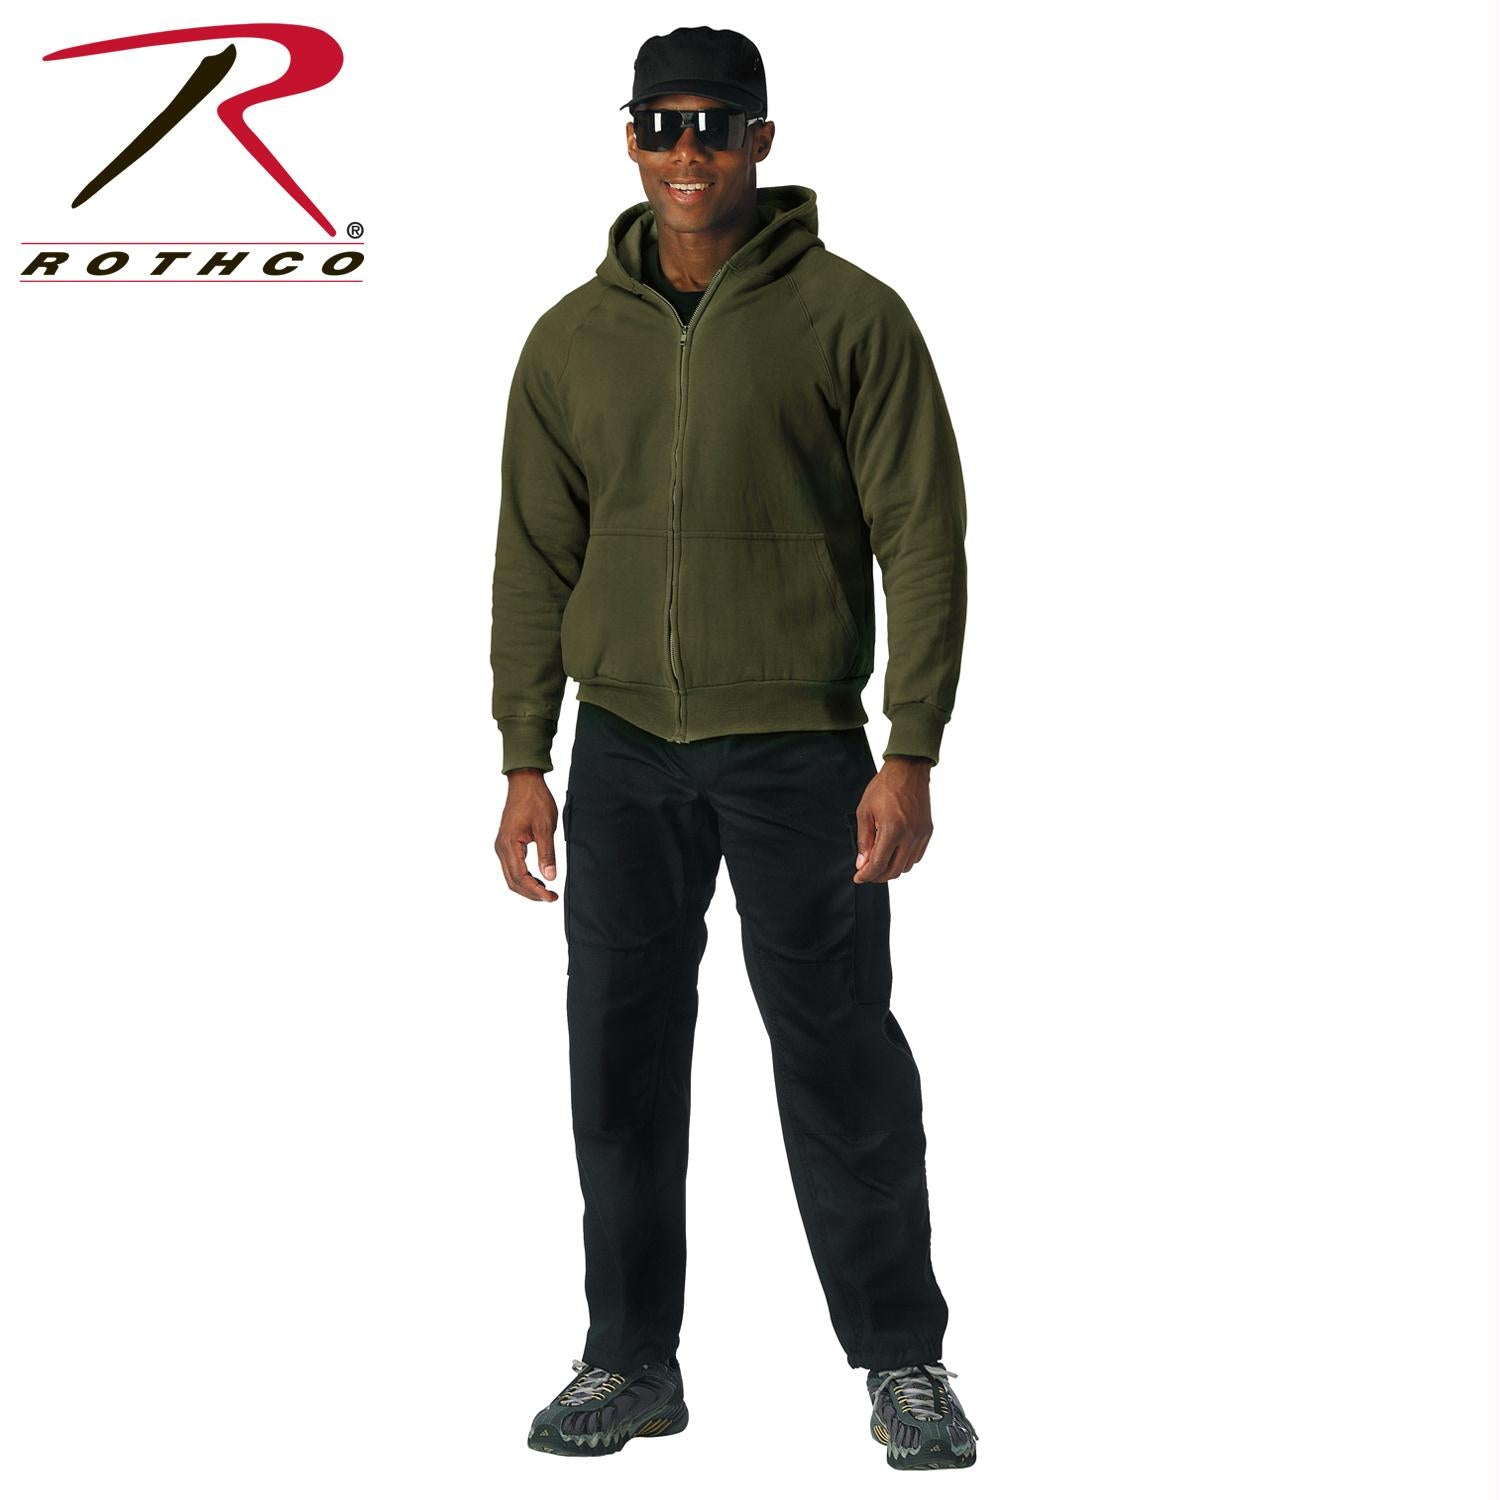 Rothco Thermal Lined Hooded Sweatshirt - Olive Drab / M